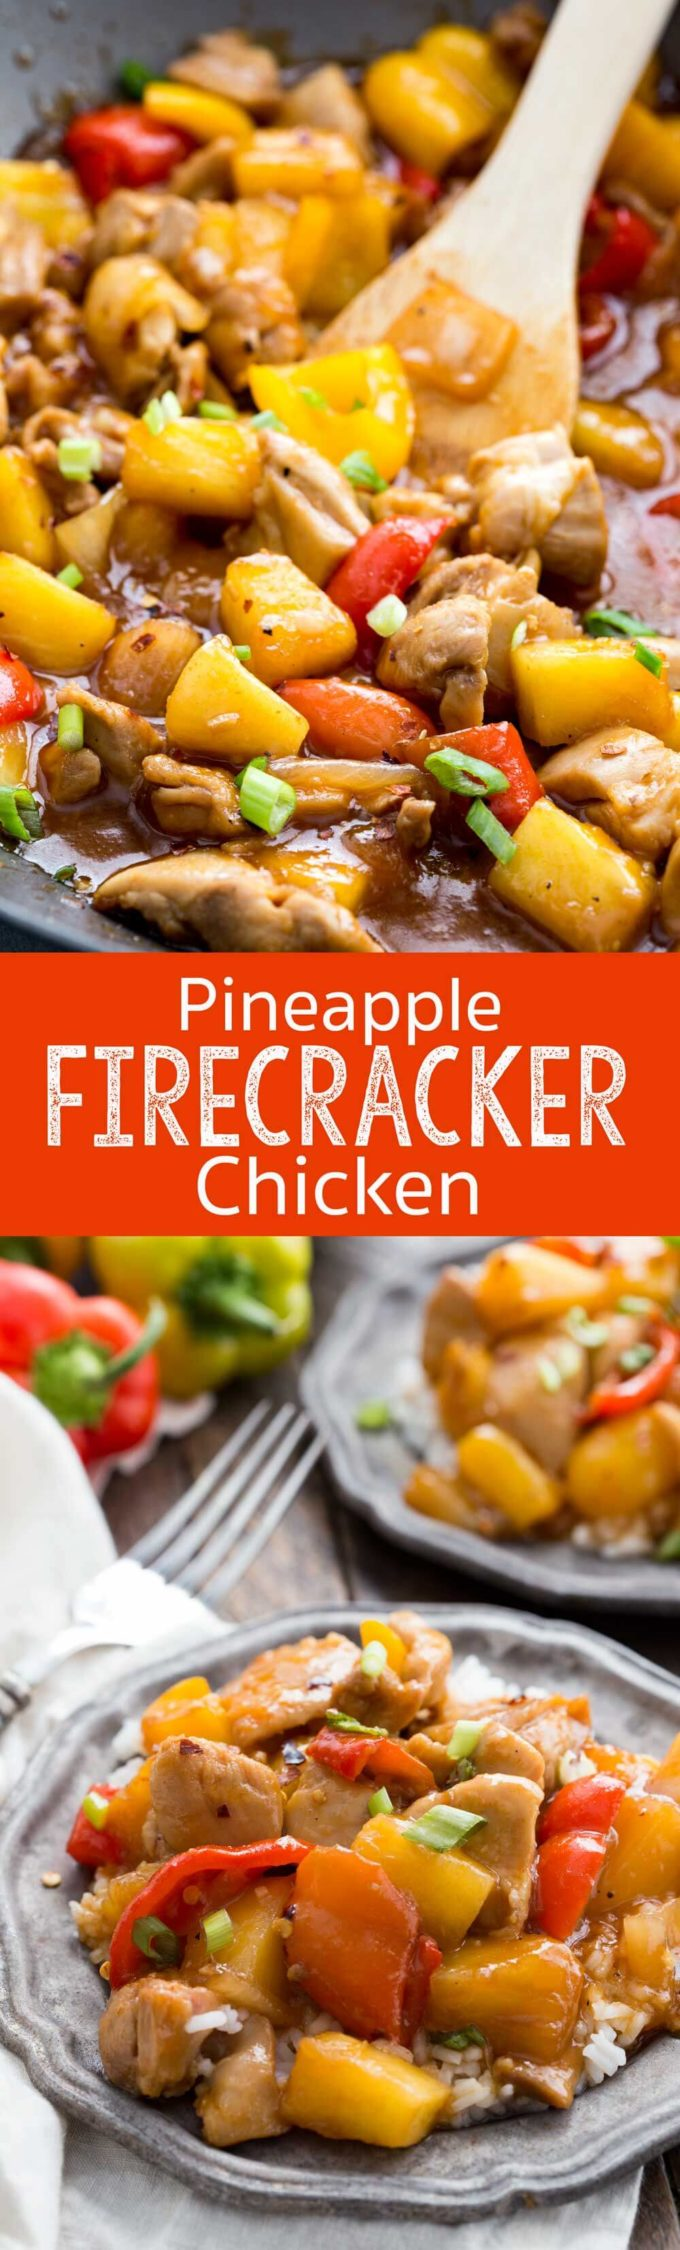 Pineapple Firecracker Chicken is a quick and easy 30 minute meal that offers a tantalizingly sweet and spicy sauce!